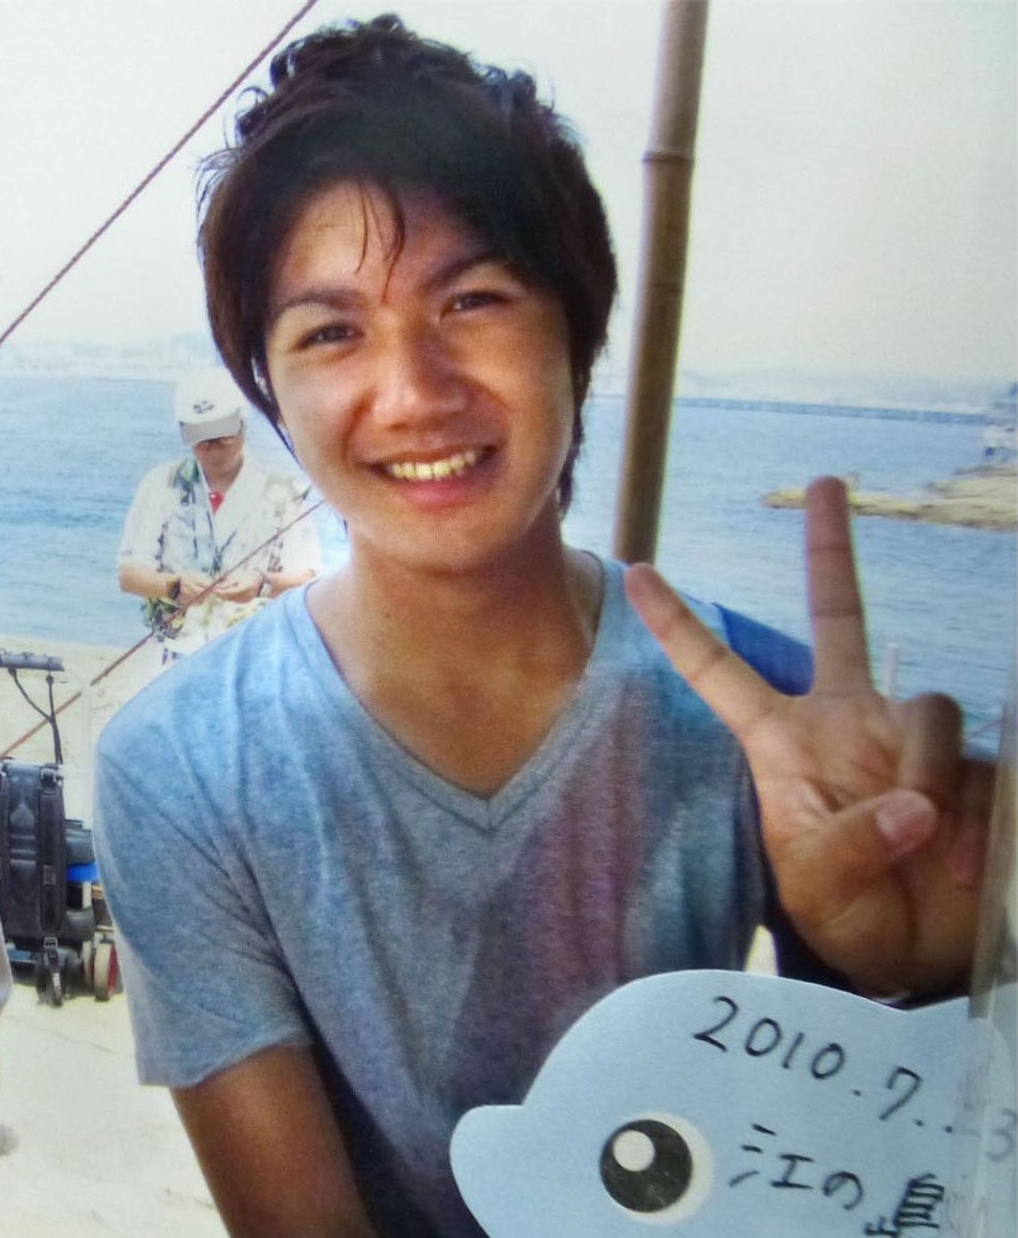 Photo of Kei when he worked as a tourist guide circa 2010.